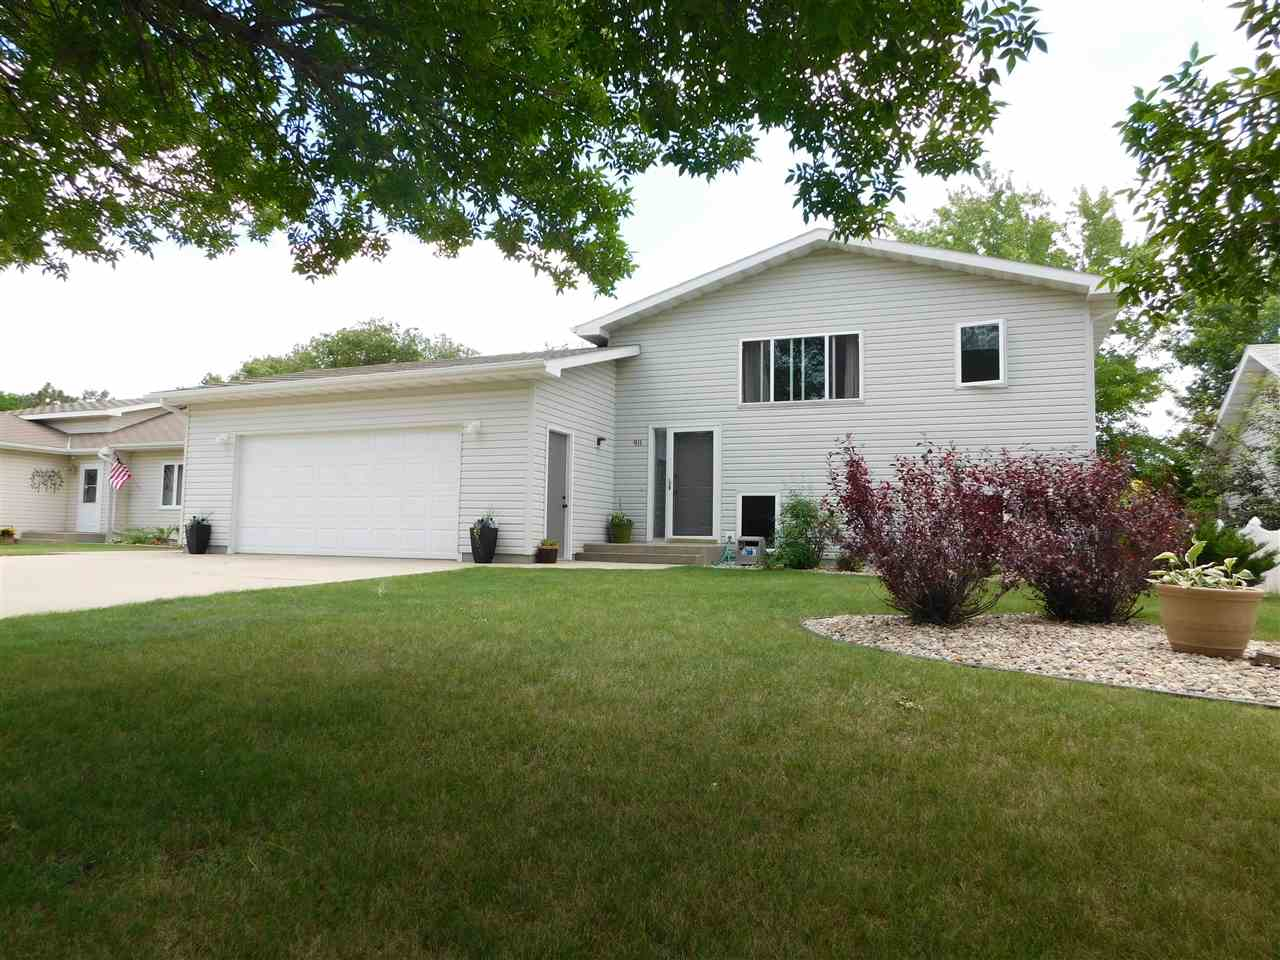 911 NW 25th Ave, Minot, ND 58701